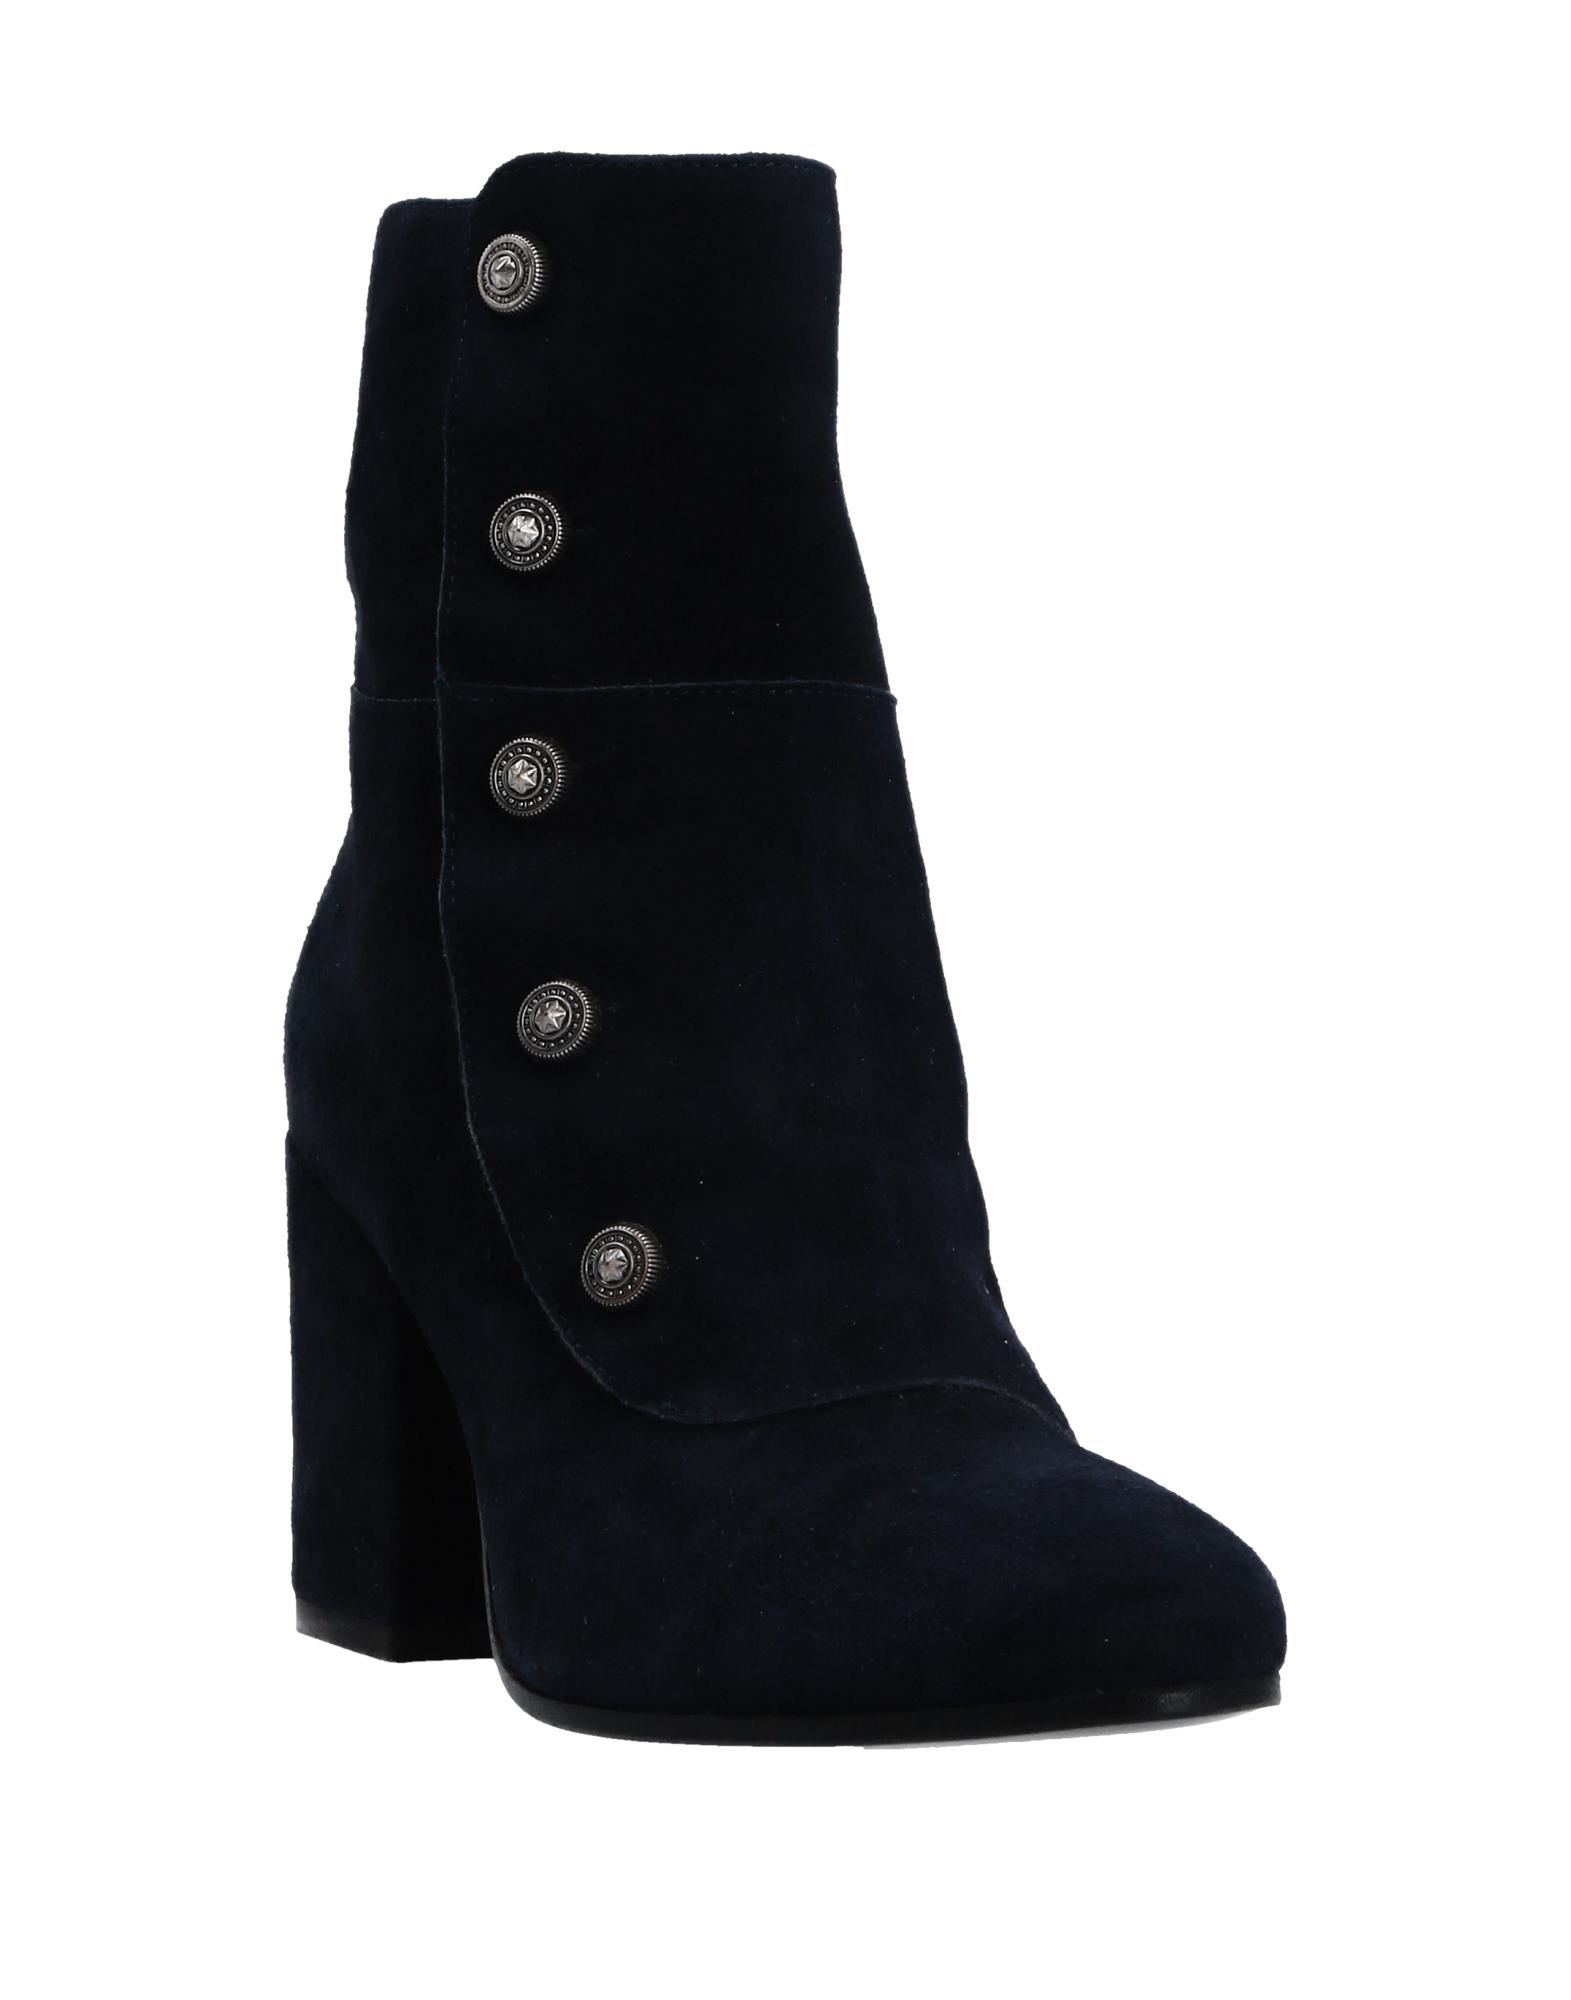 e69cf15c001b ... Chocolà Ankle Boot Boot Boot - Women Chocolà Ankle Boots online on  United Kingdom - 11529283SL ...